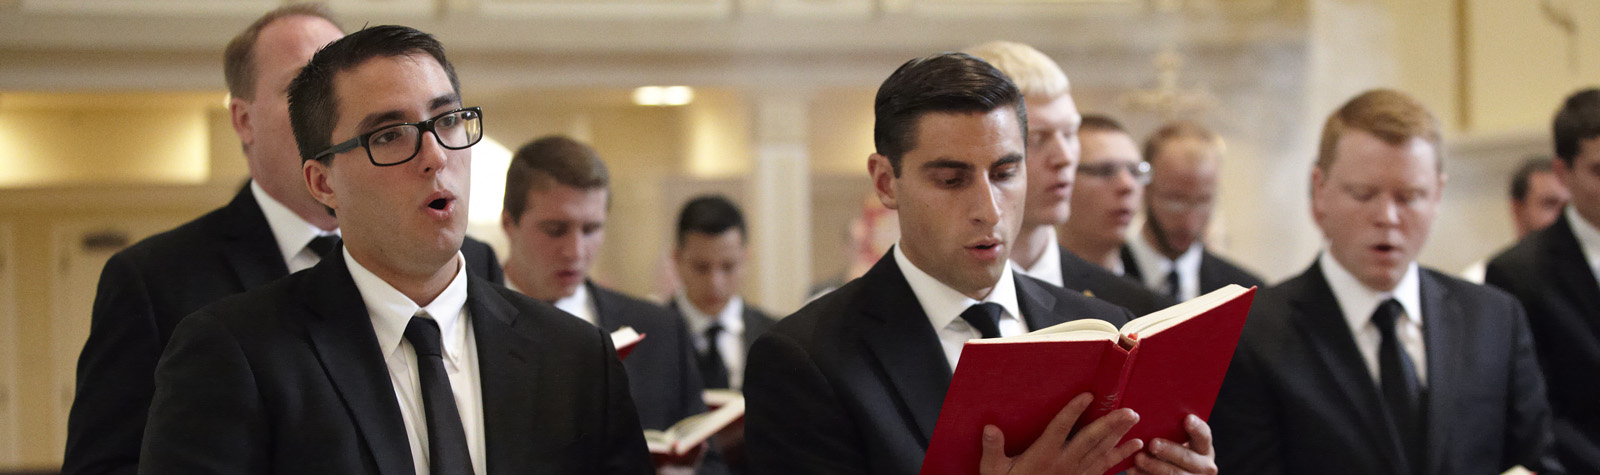 Seminarians at Lauds